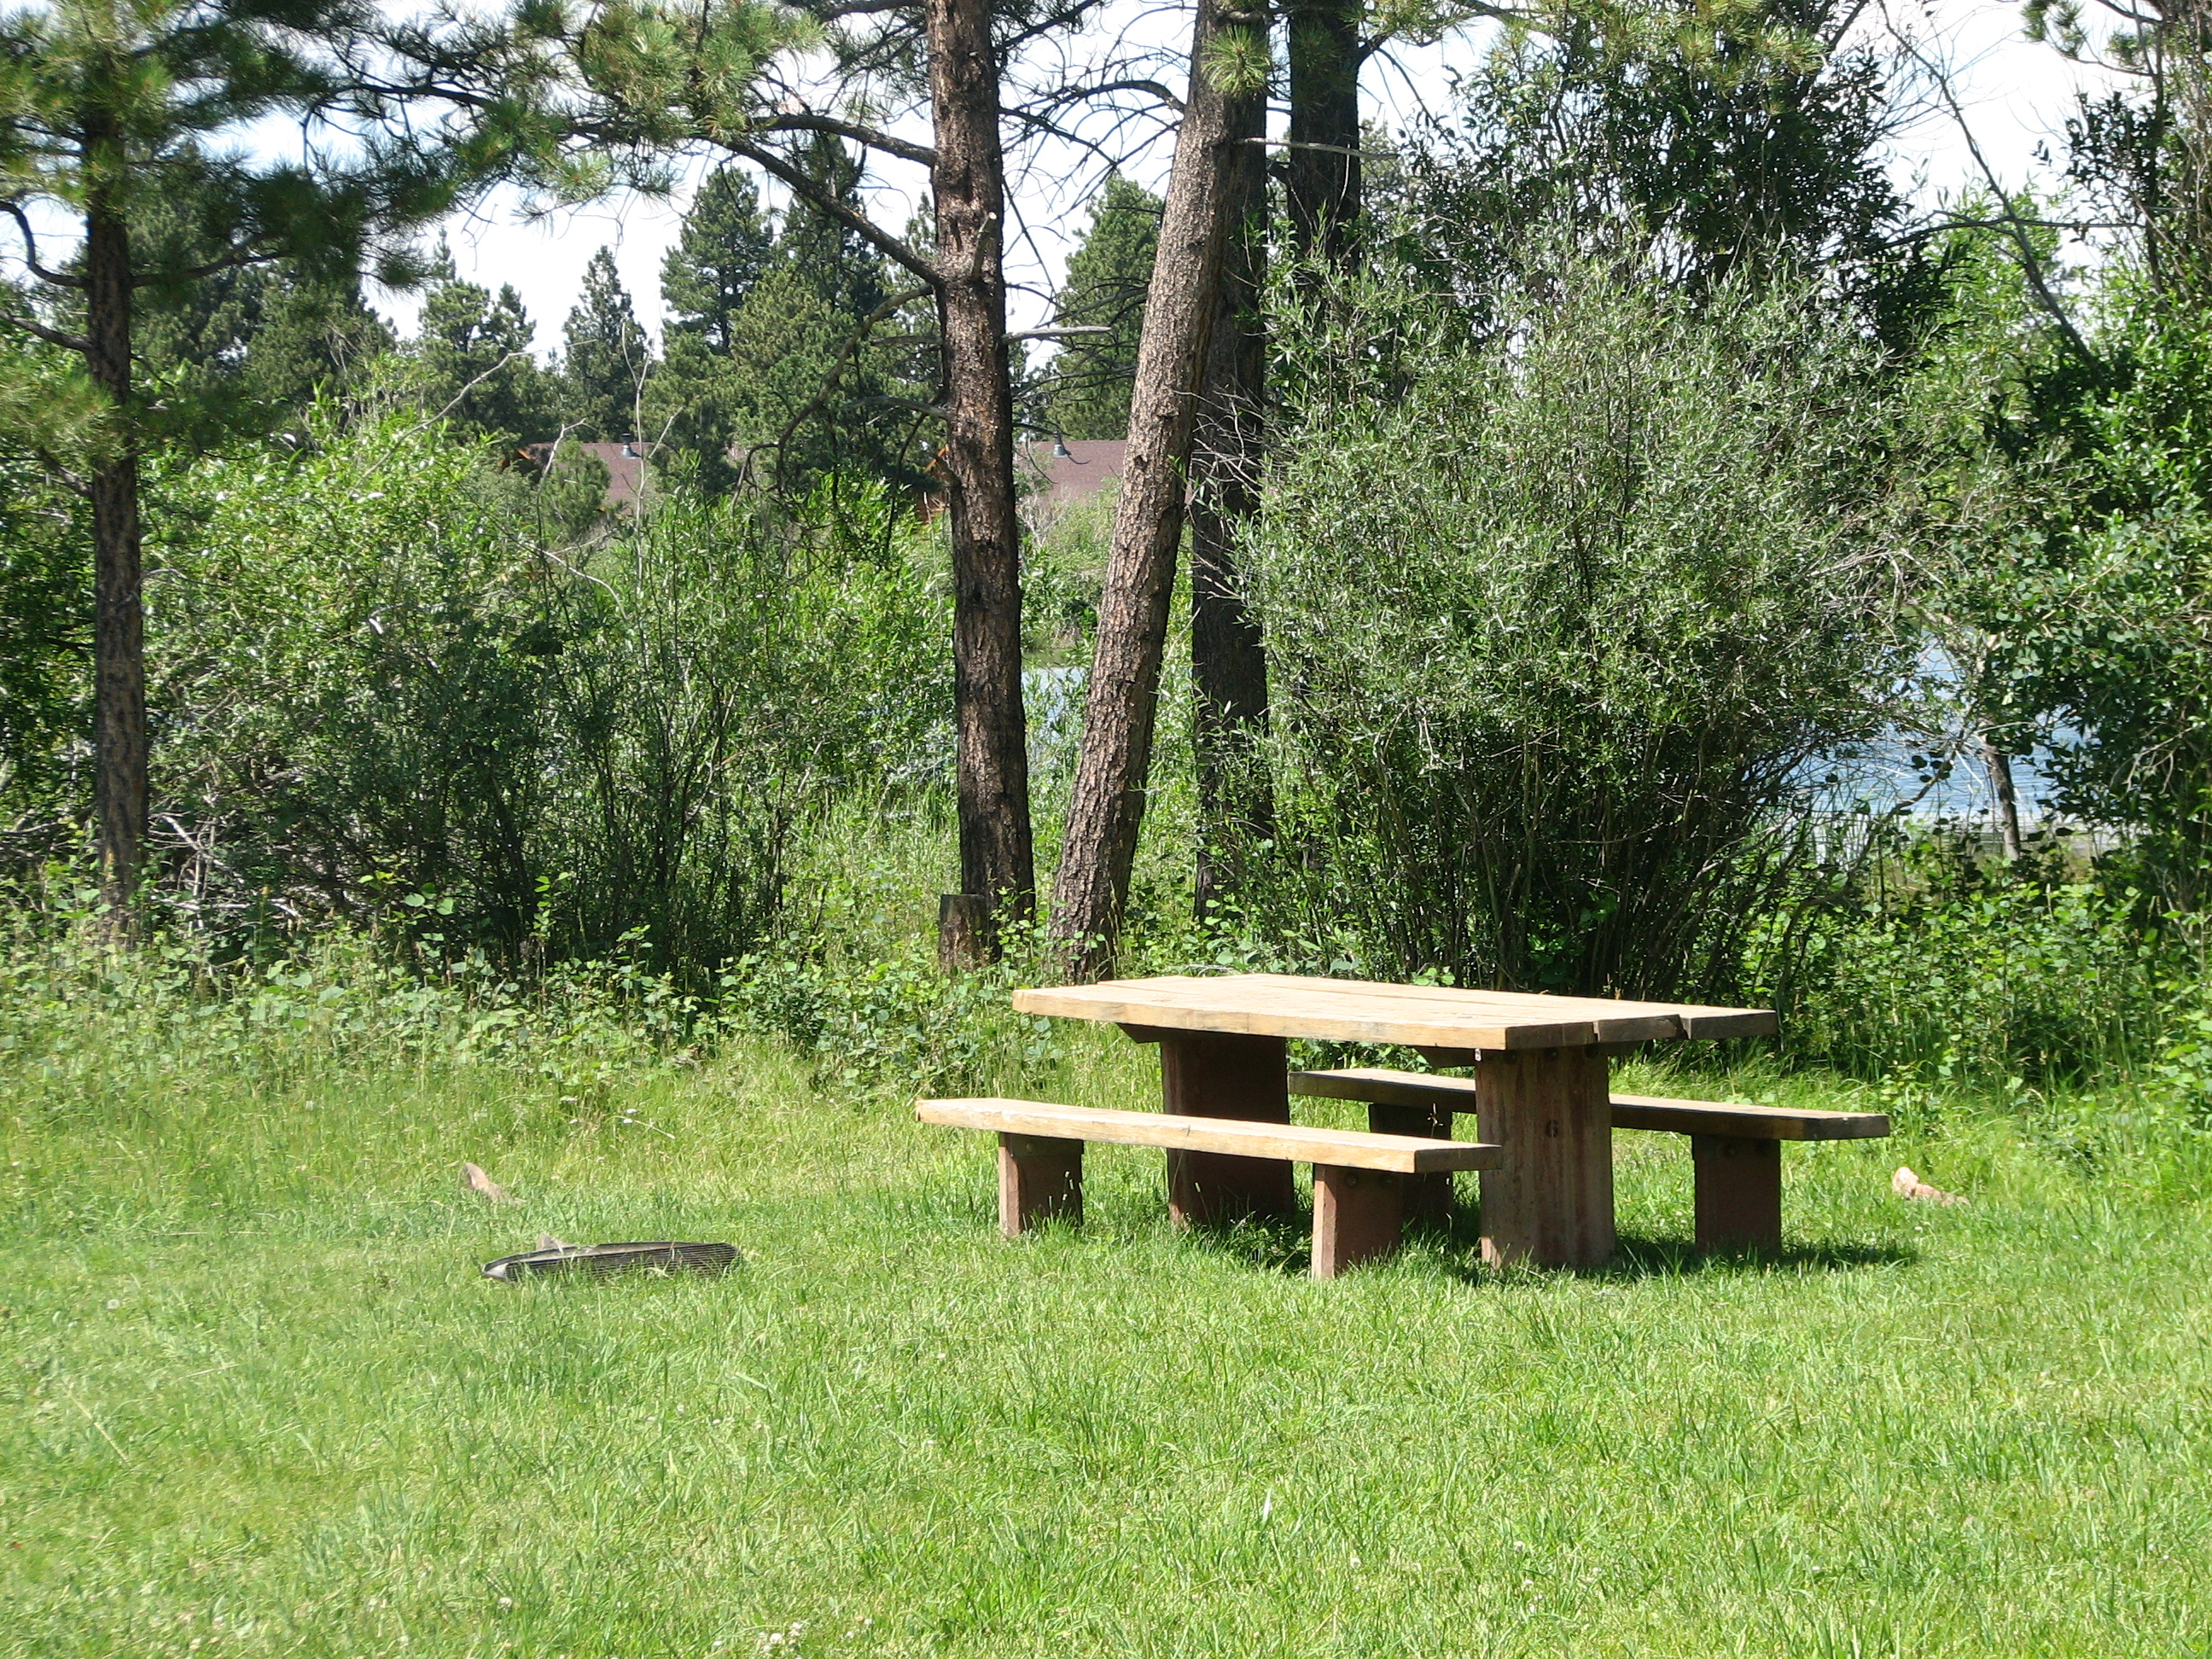 Photo of a site at the Greens Lake Campground.